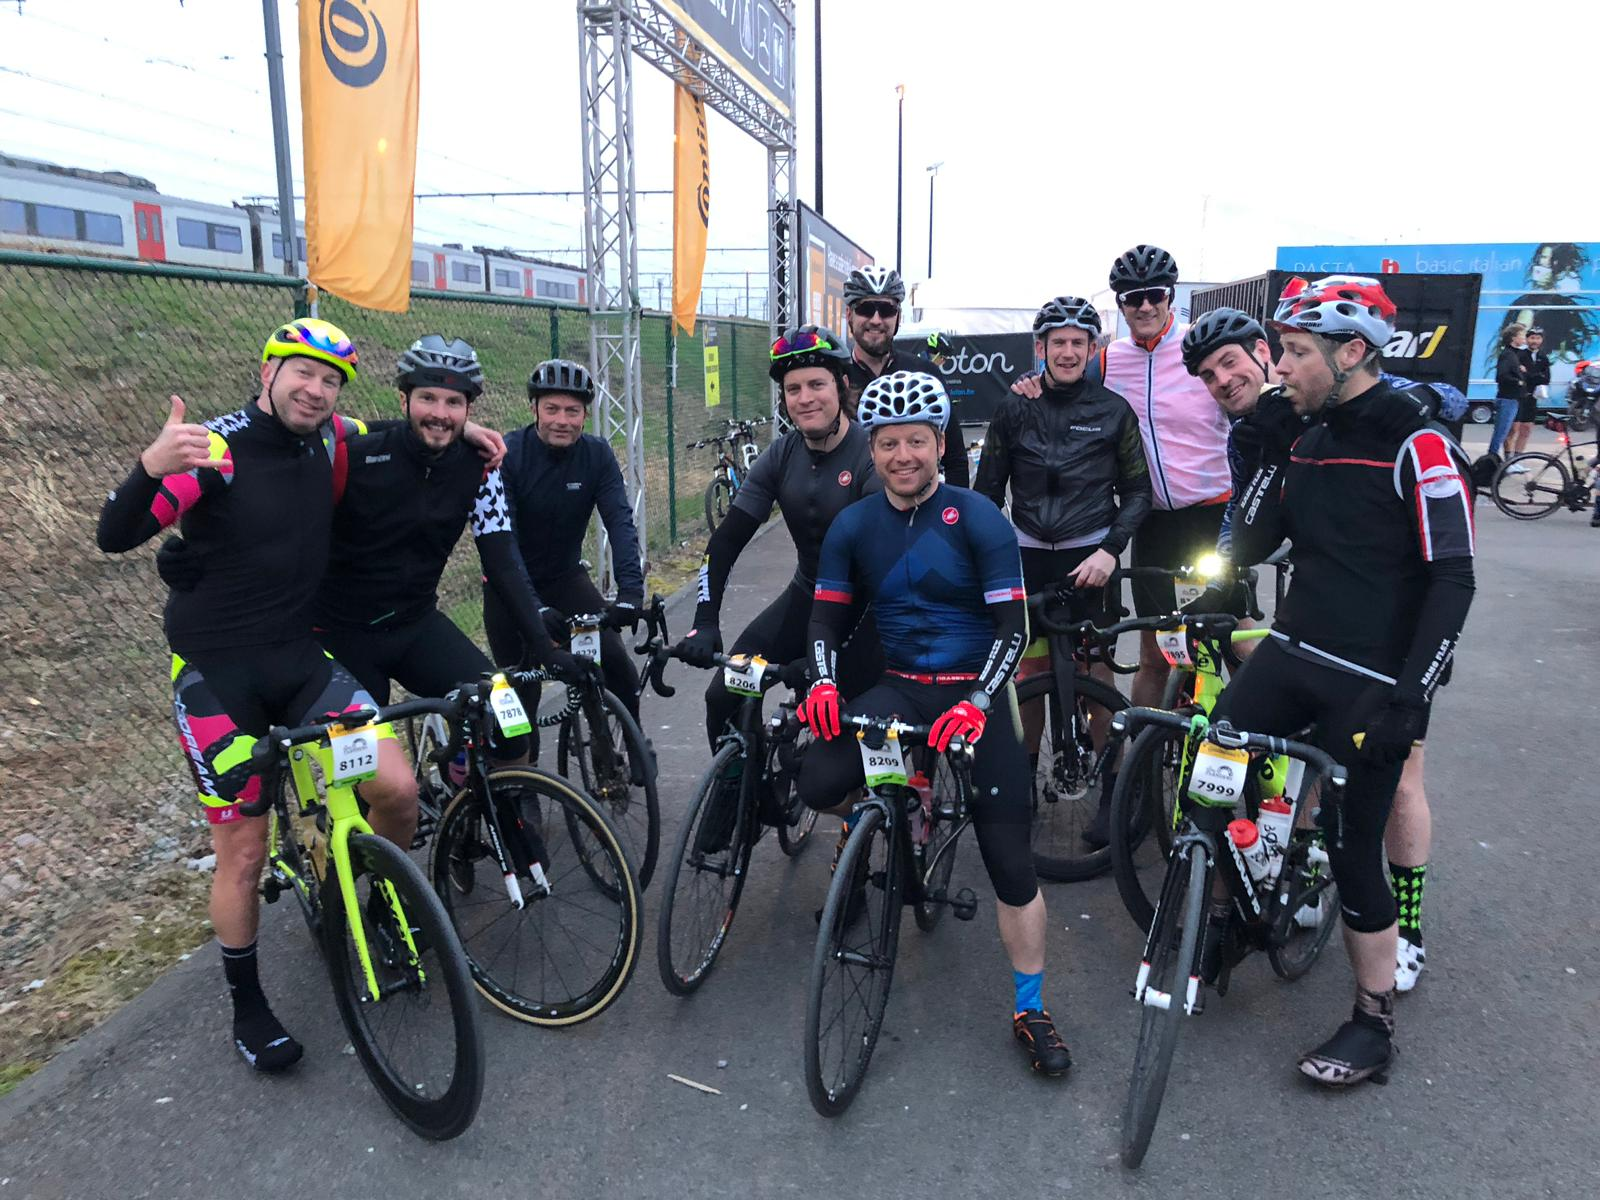 Tour of Flanders Sportive 2019 - Paul, searching for strava segments